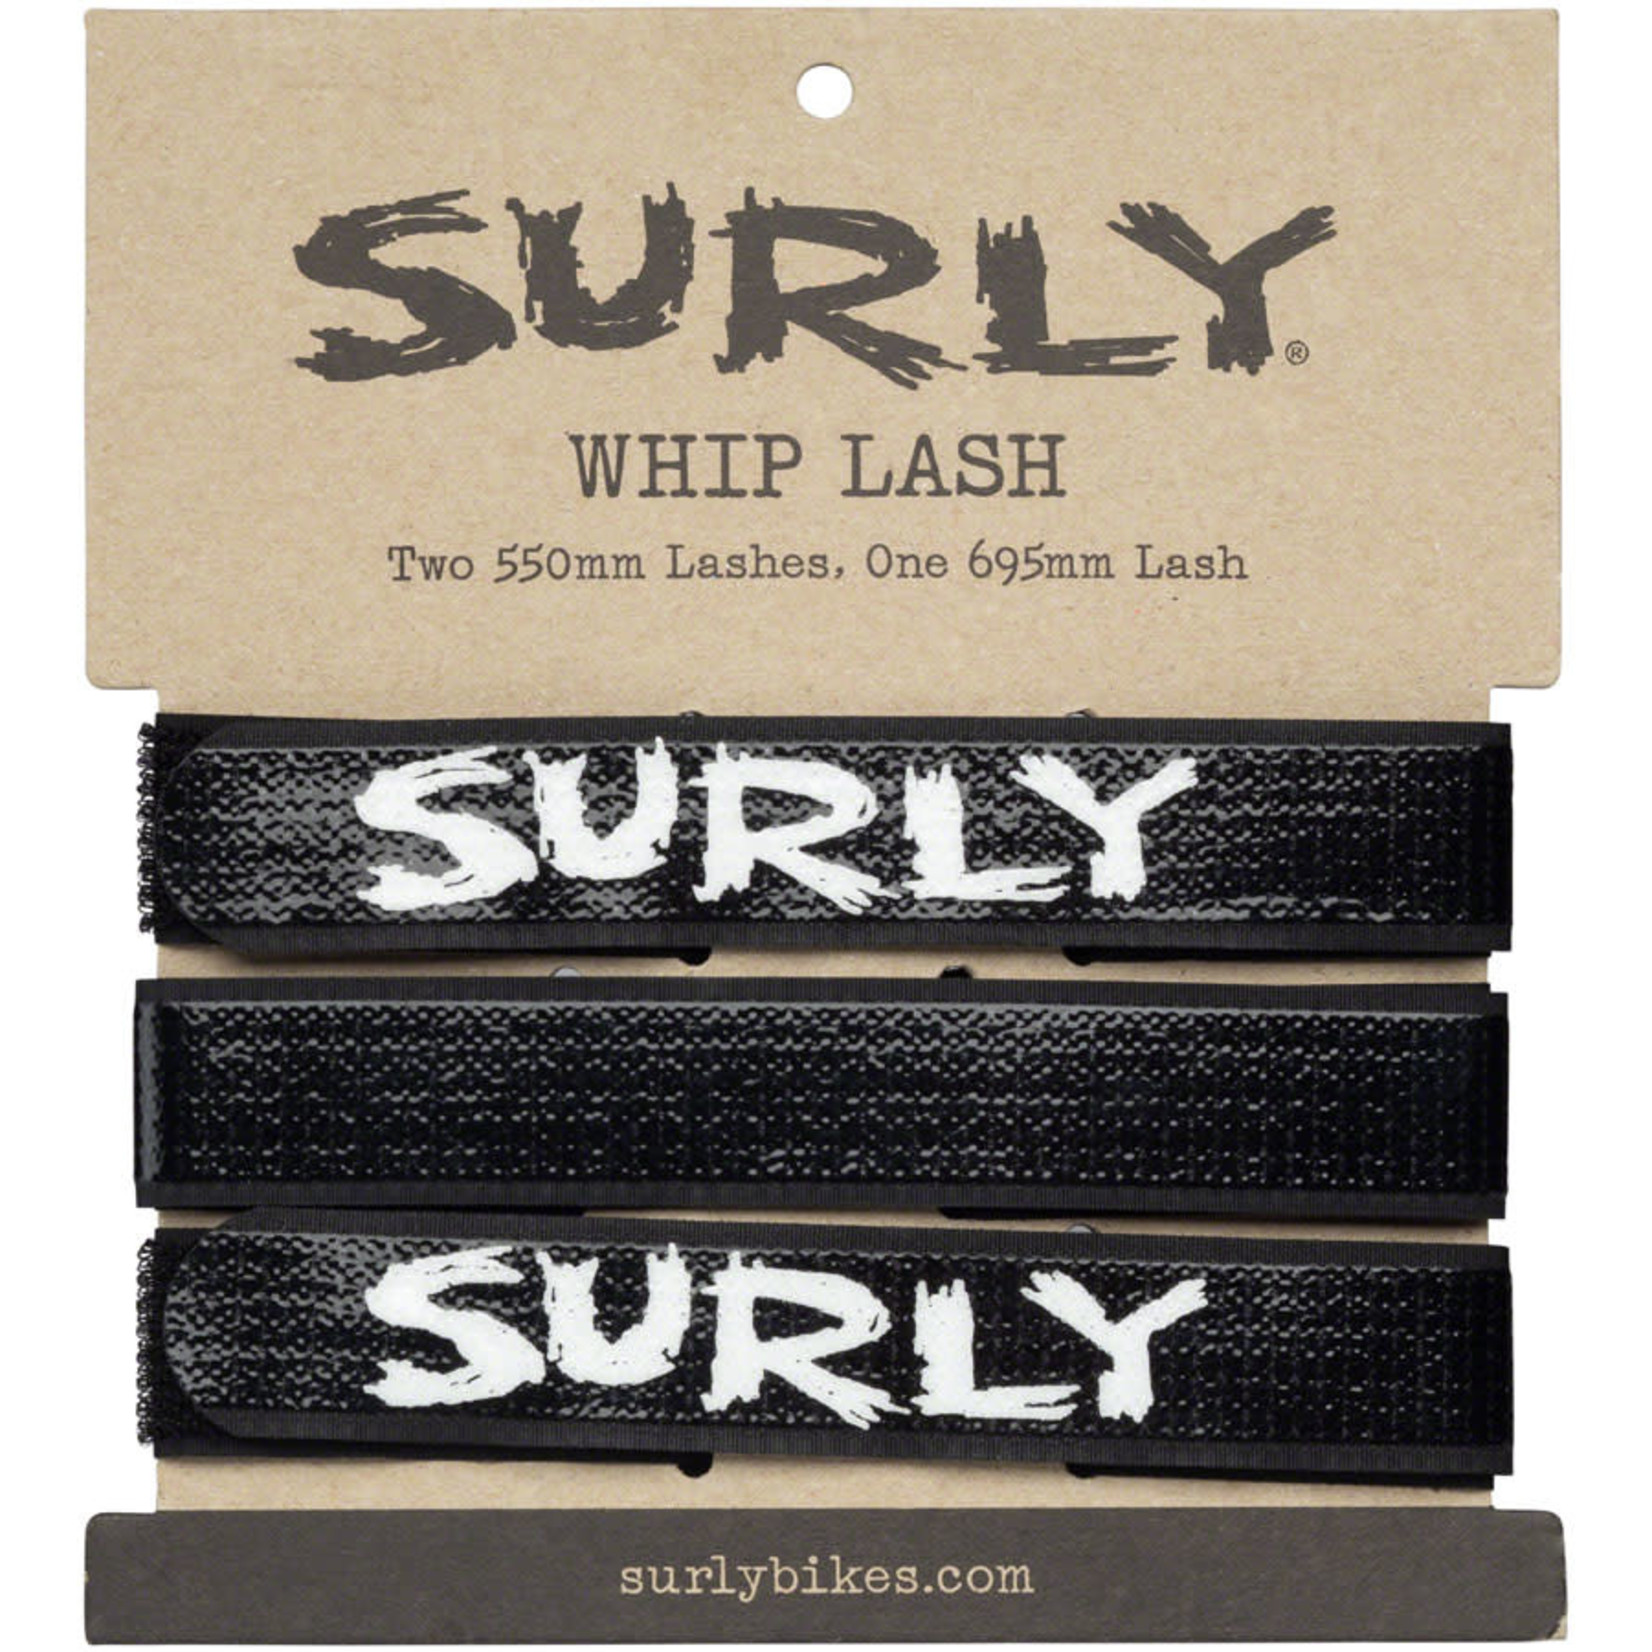 Surly Surly Whip Lash Gear Strap Multi-Pack